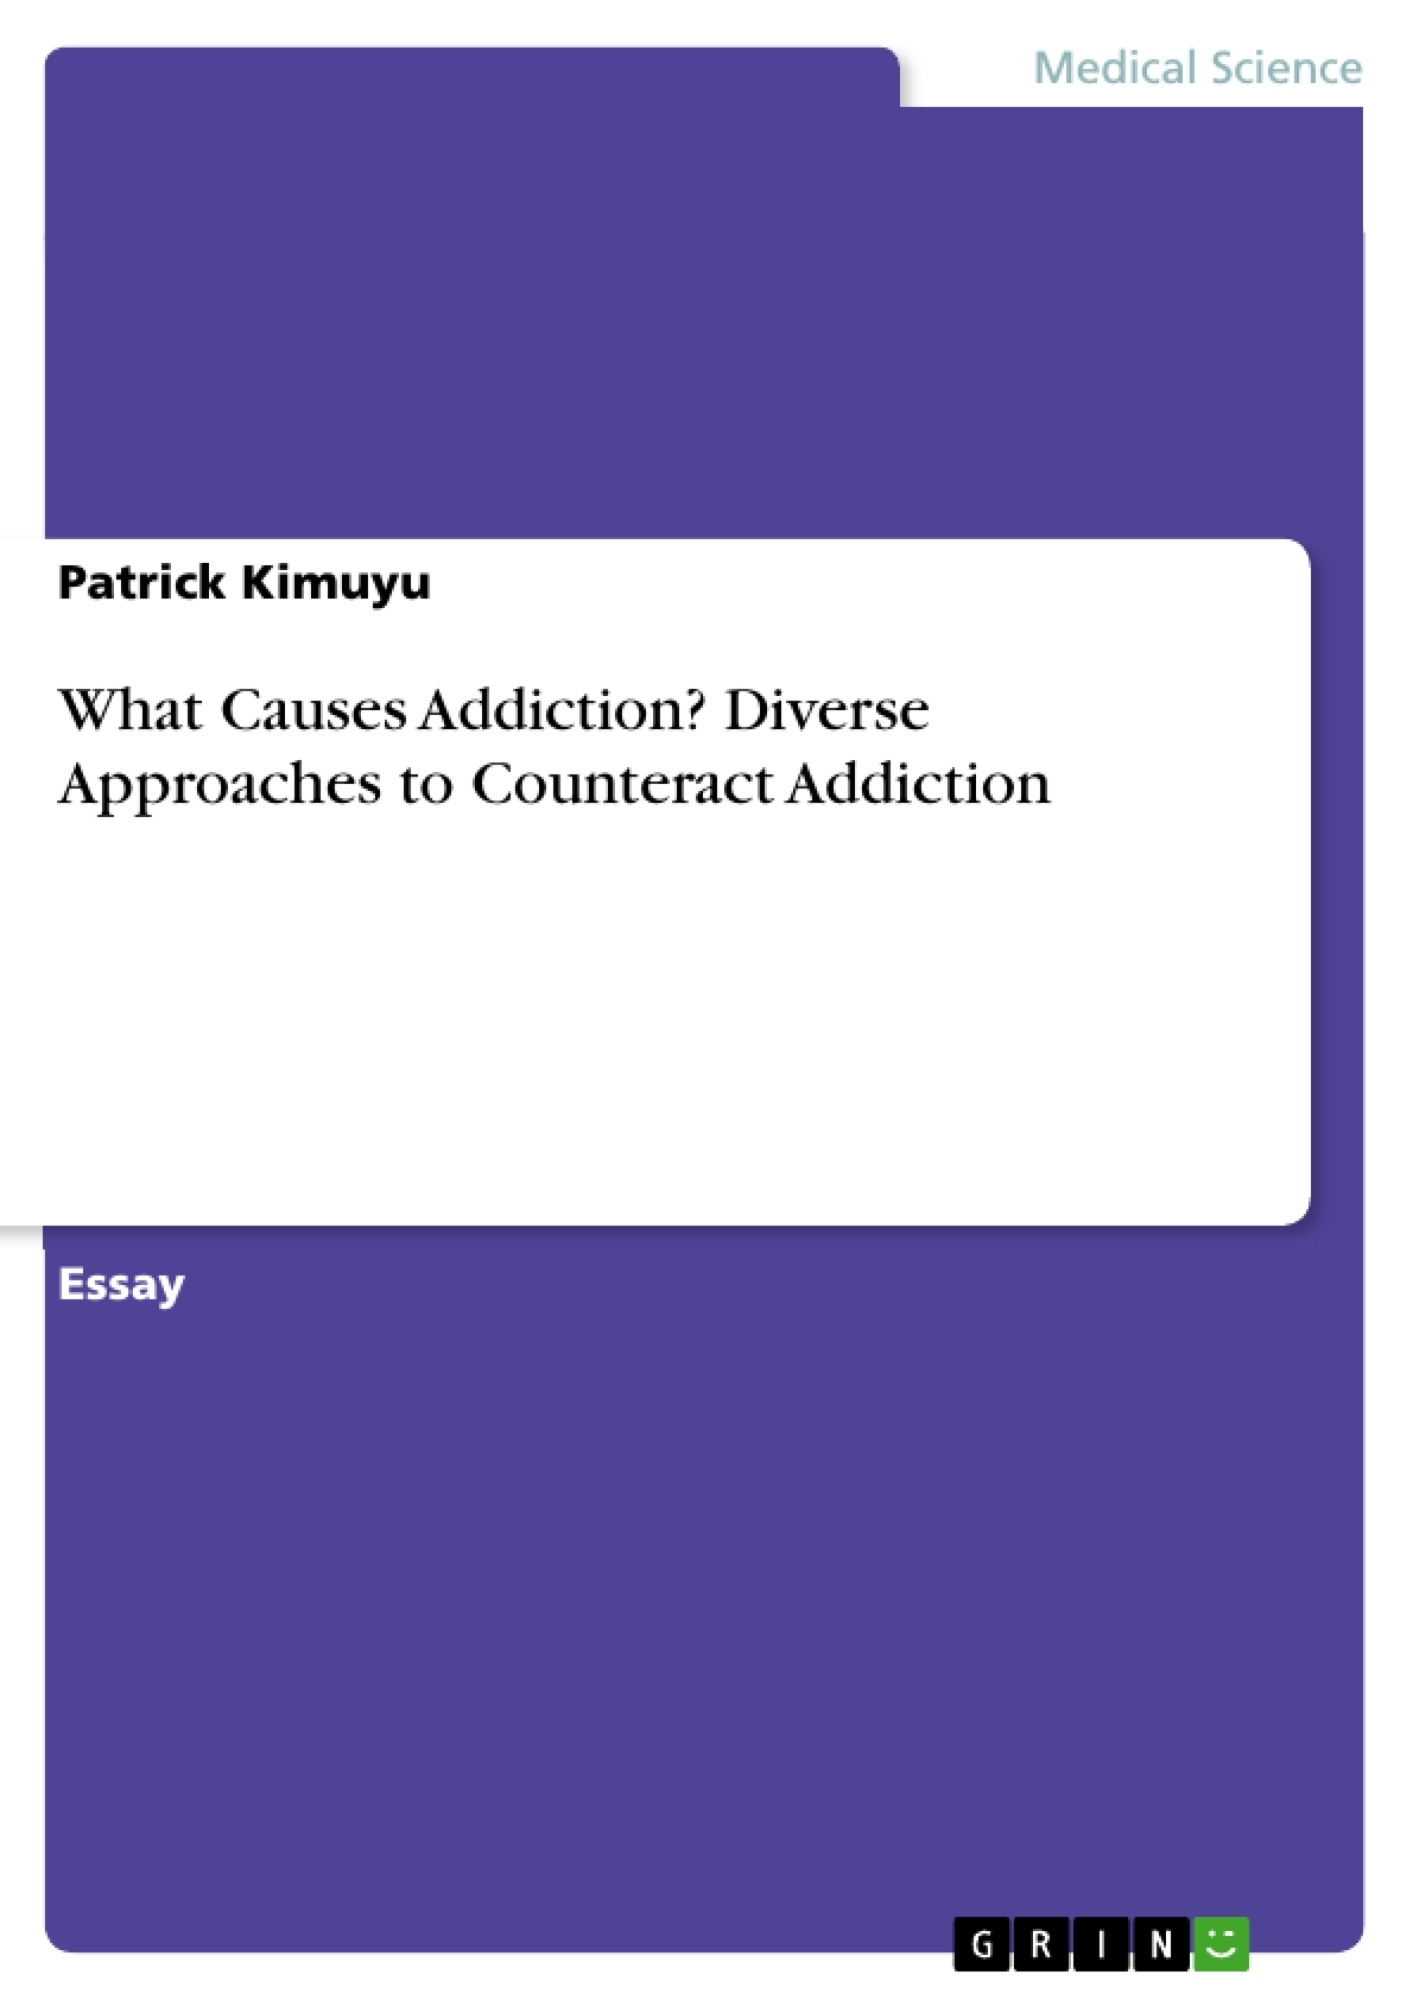 Title: What Causes Addiction? Diverse Approaches to Counteract Addiction